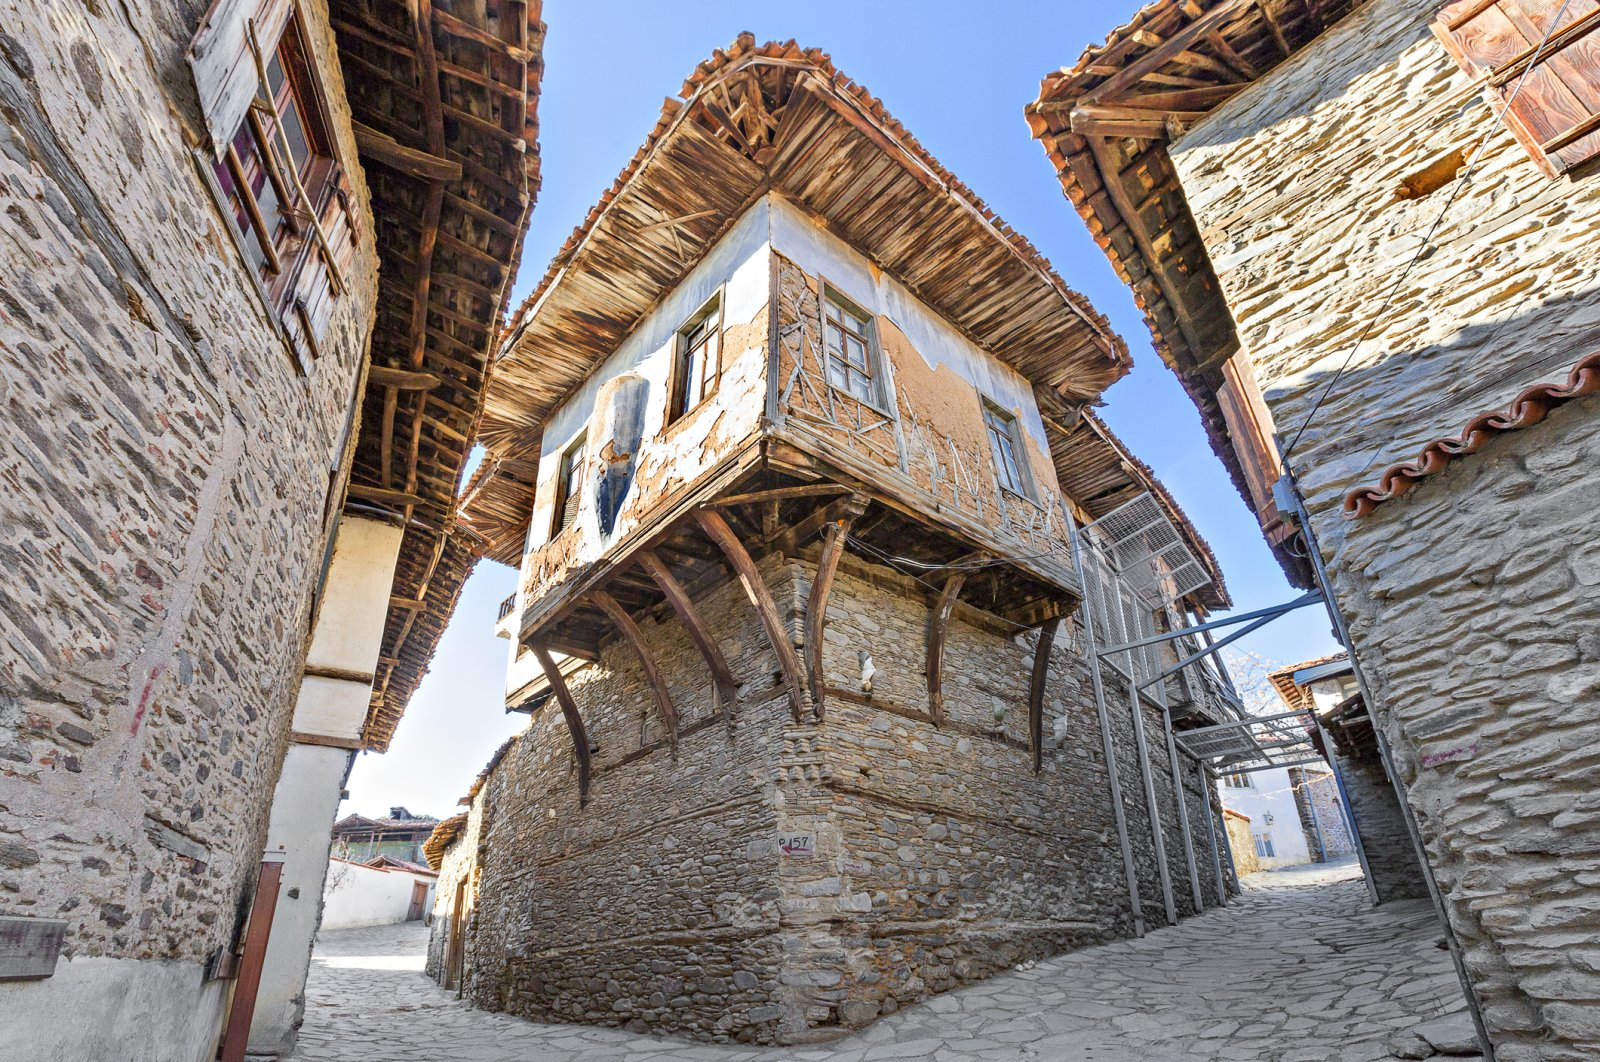 The Kerimağa Mansion was built with a wooden carcass system with bricks and mud mortar. (iStock Photo)